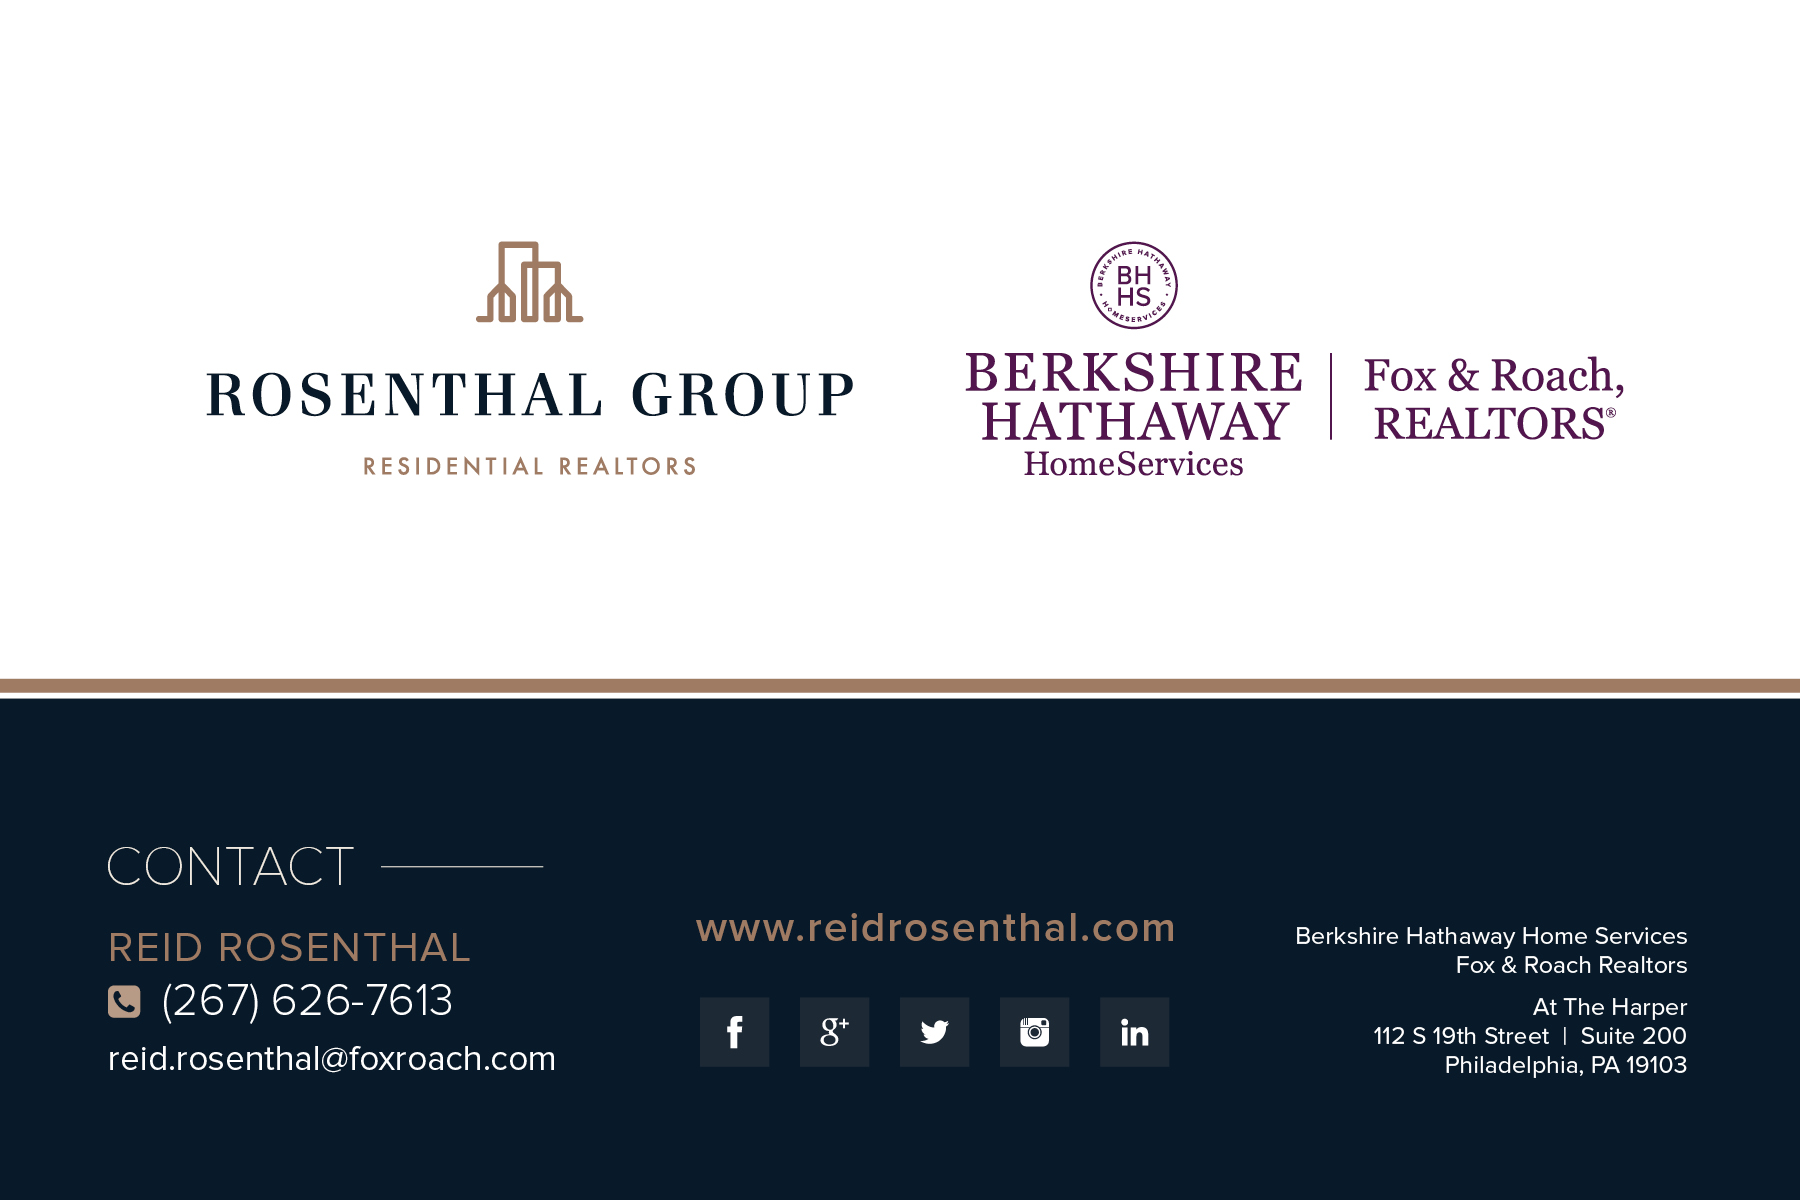 Reid Rosenthal and The Rosenthal Group Contact Information